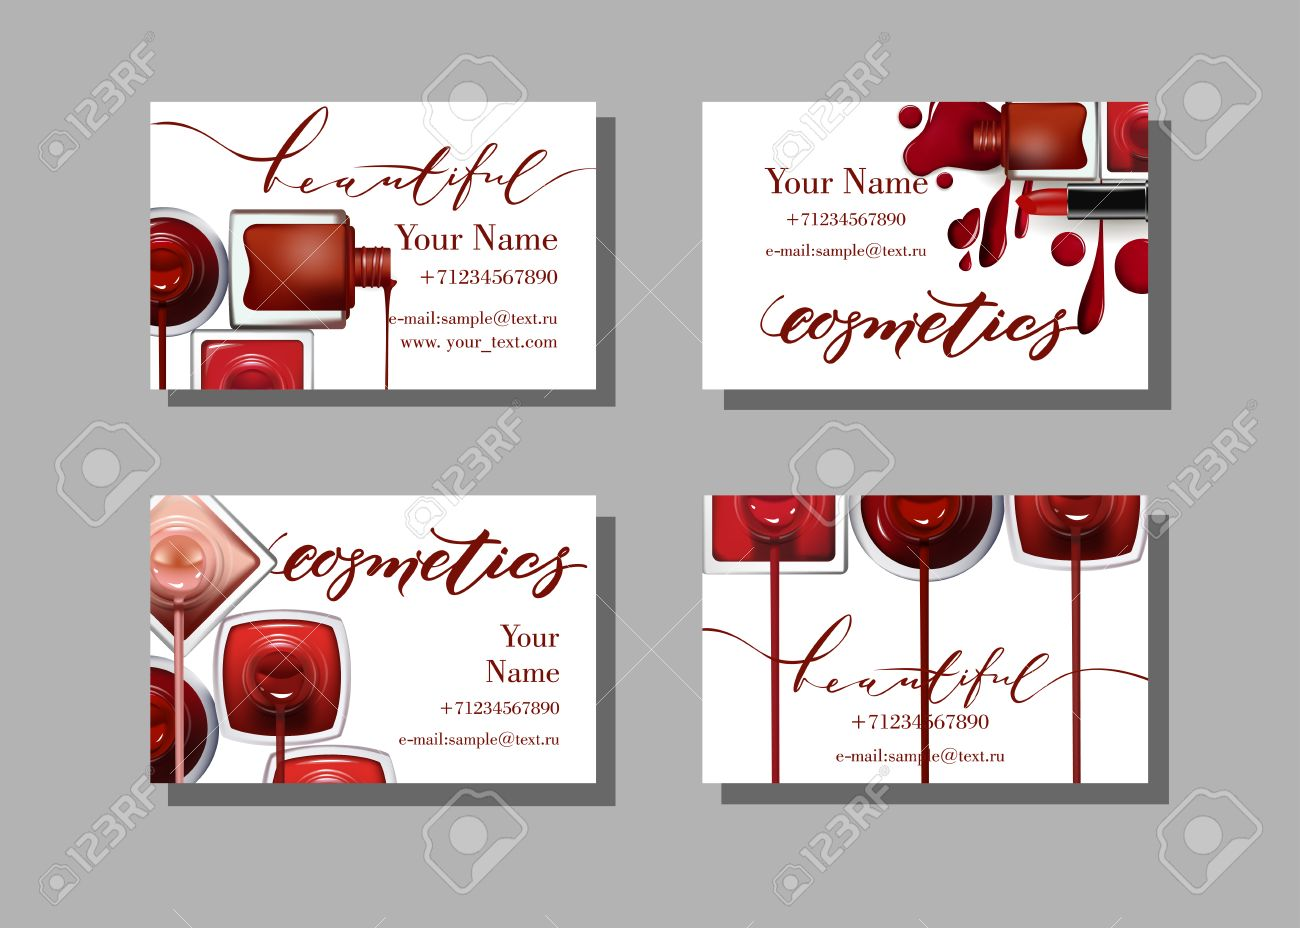 Makeup artist business card vector template with makeup items makeup artist business card vector template with makeup items pattern nail polish fashion and colourmoves